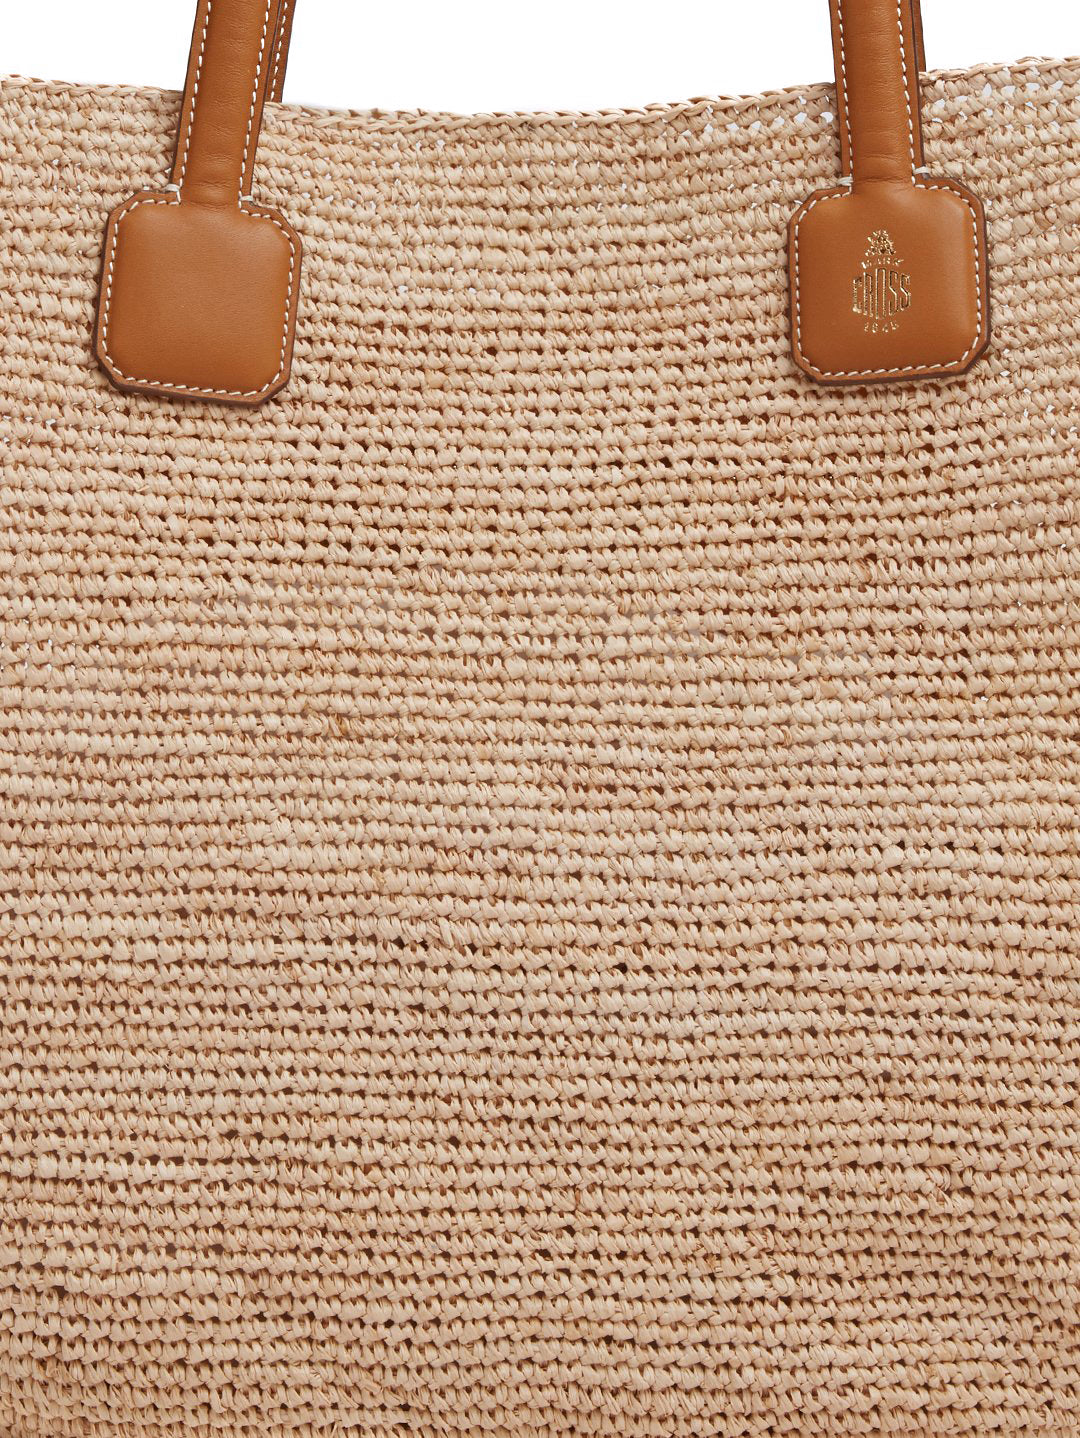 Mark Cross Côte d'Azur Raffia & Leather Tote Bag Soft Calf Luggage / Natural Raffia Detail